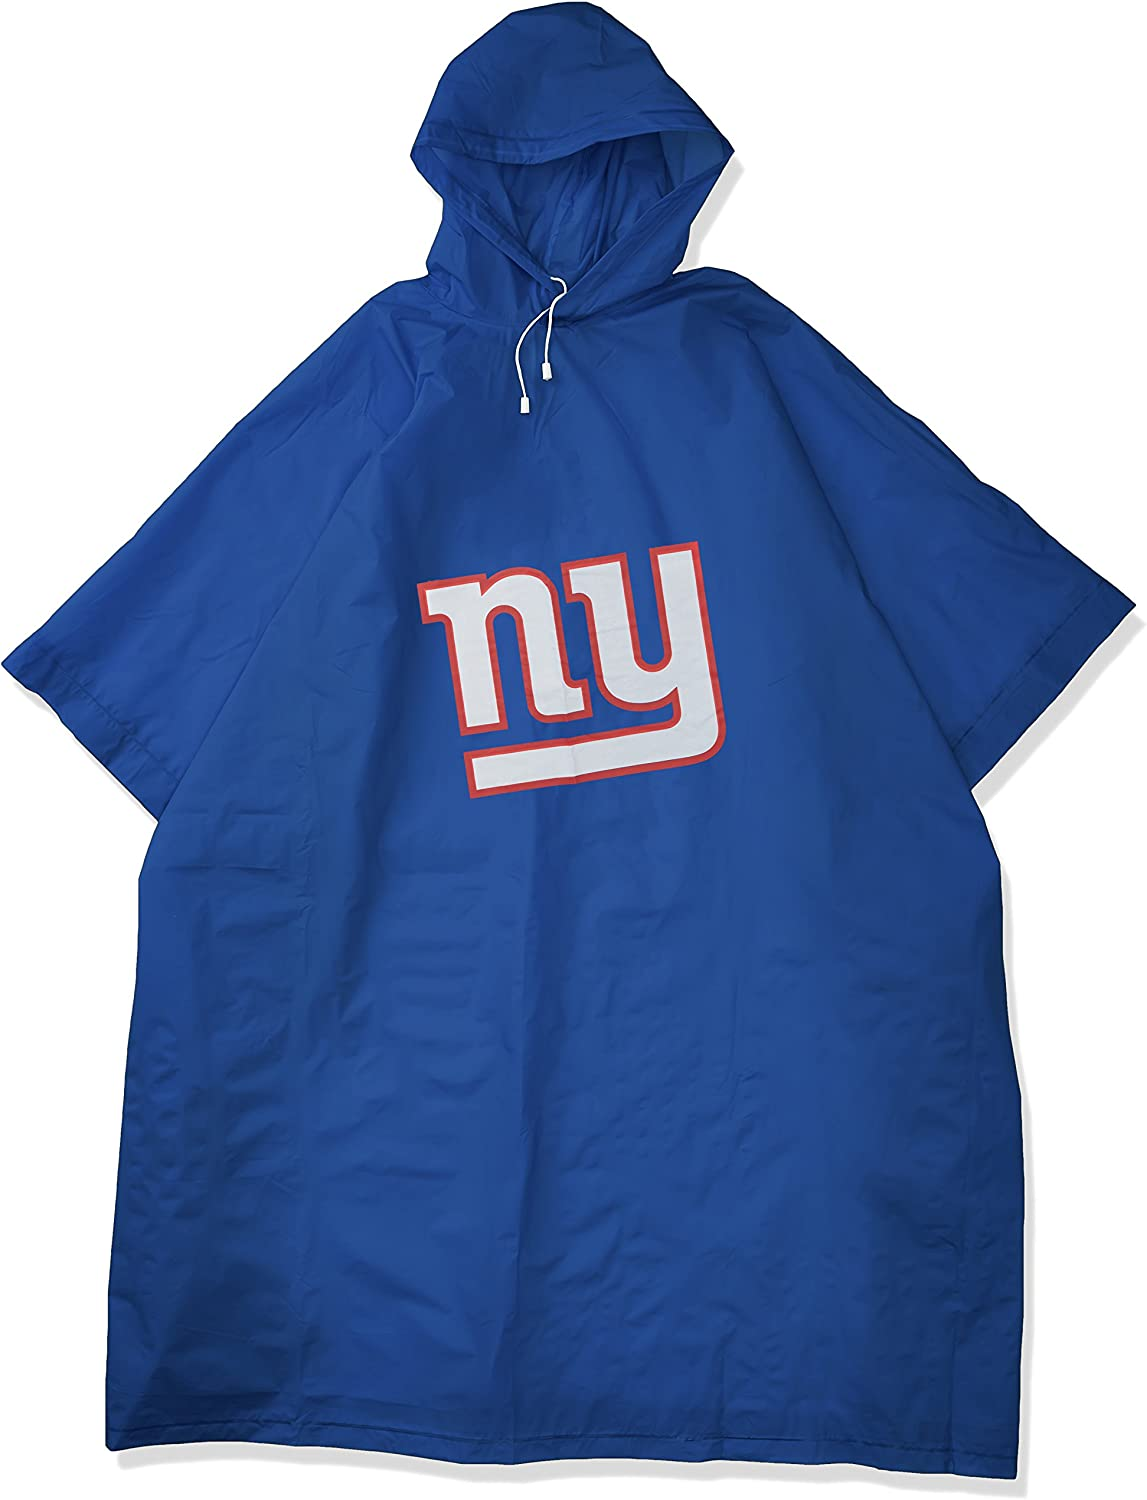 The Northwest Company Officially Licensed NFL Deluxe Poncho, 44